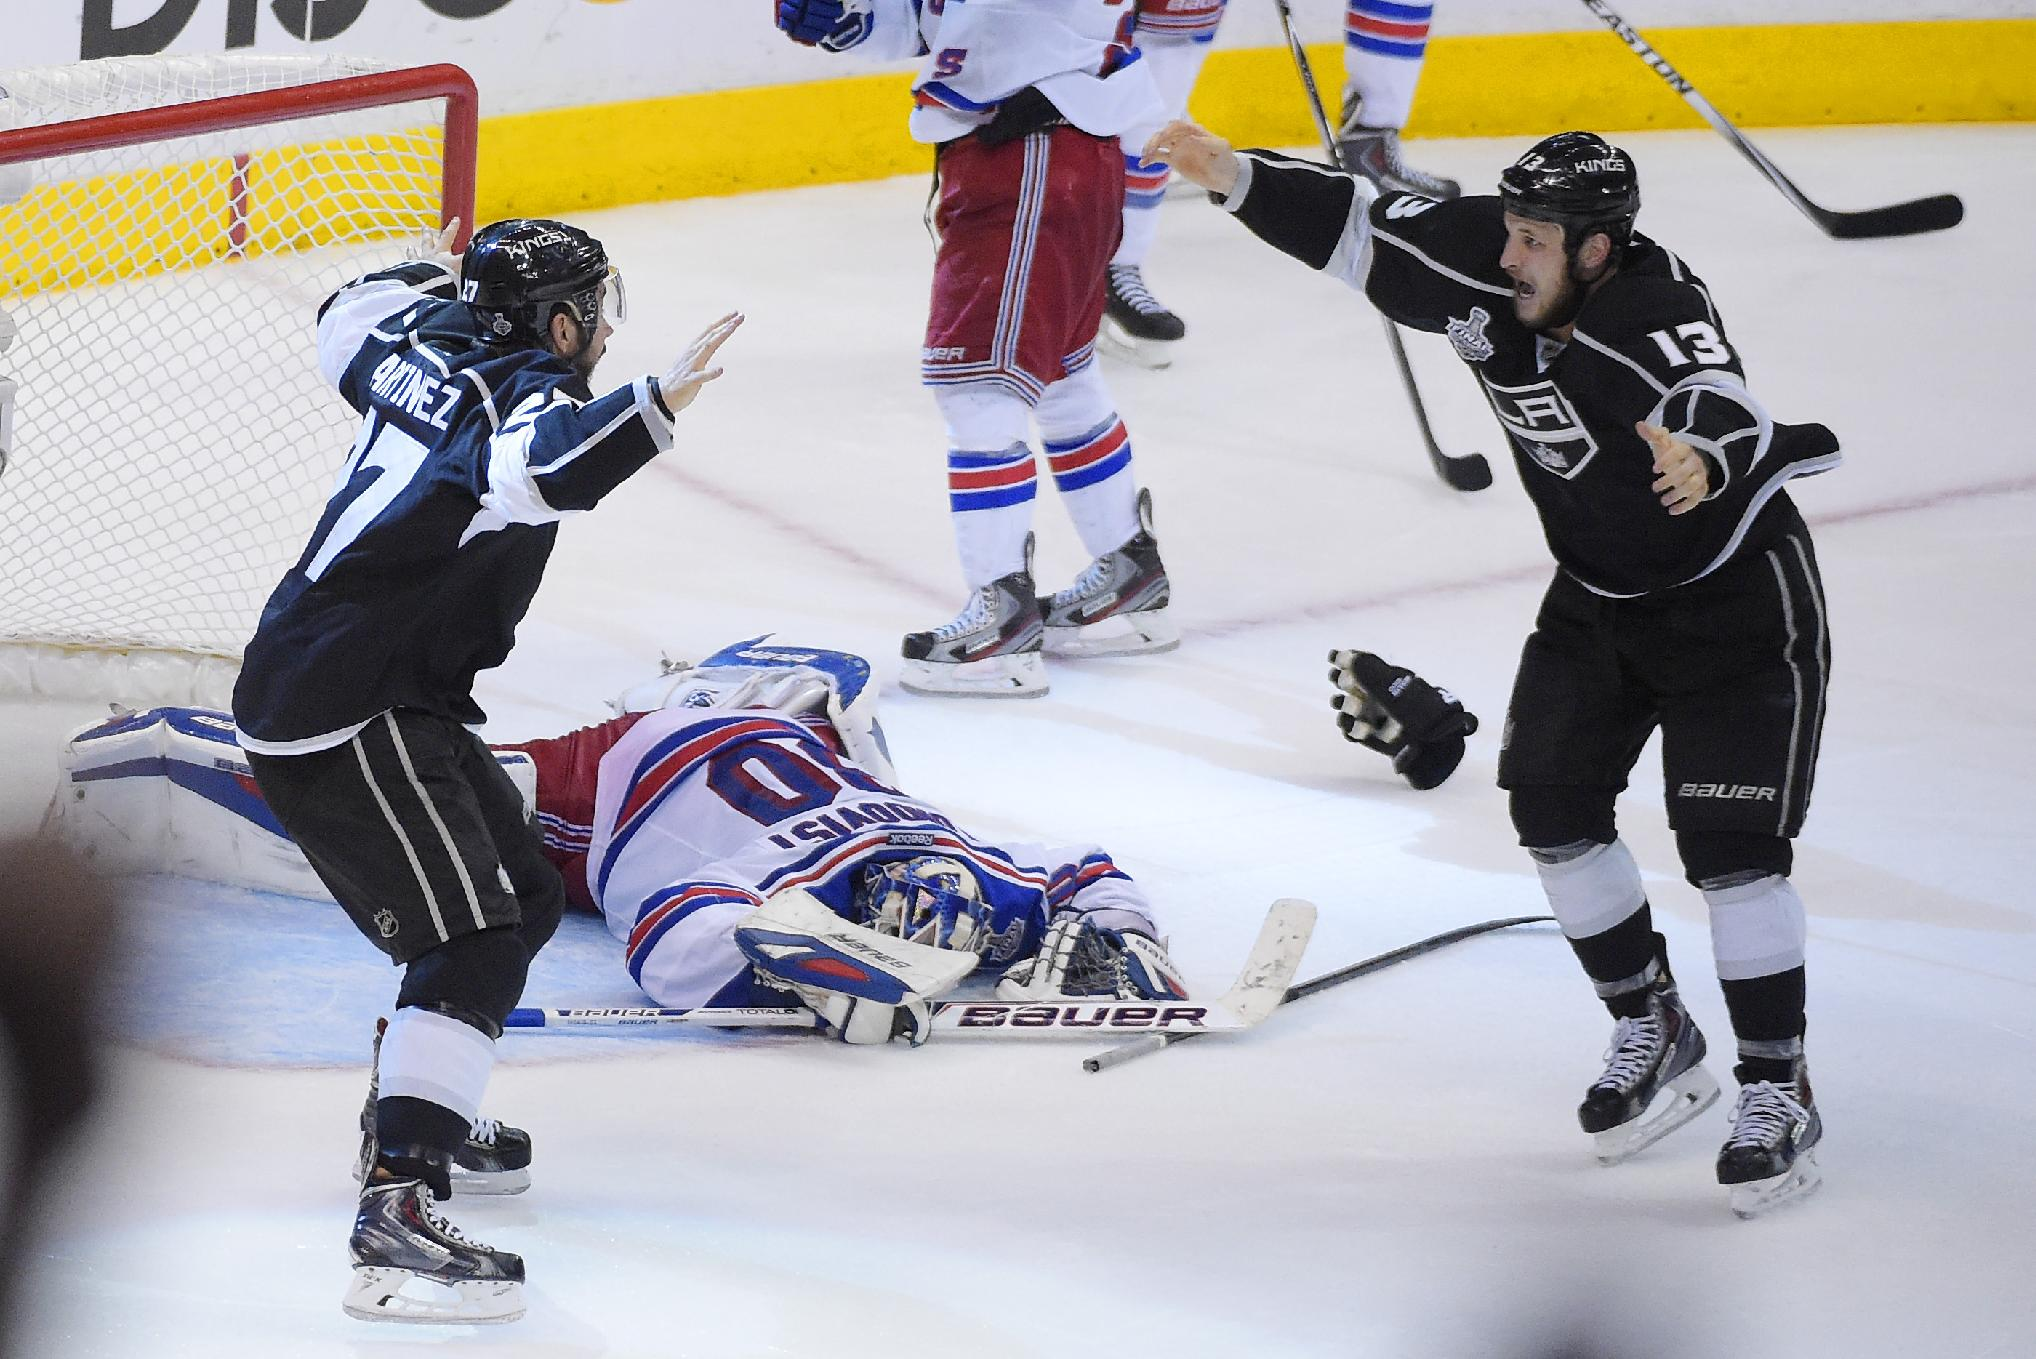 LA Kings win Stanley Cup in dramatic double OT victory over Ran…